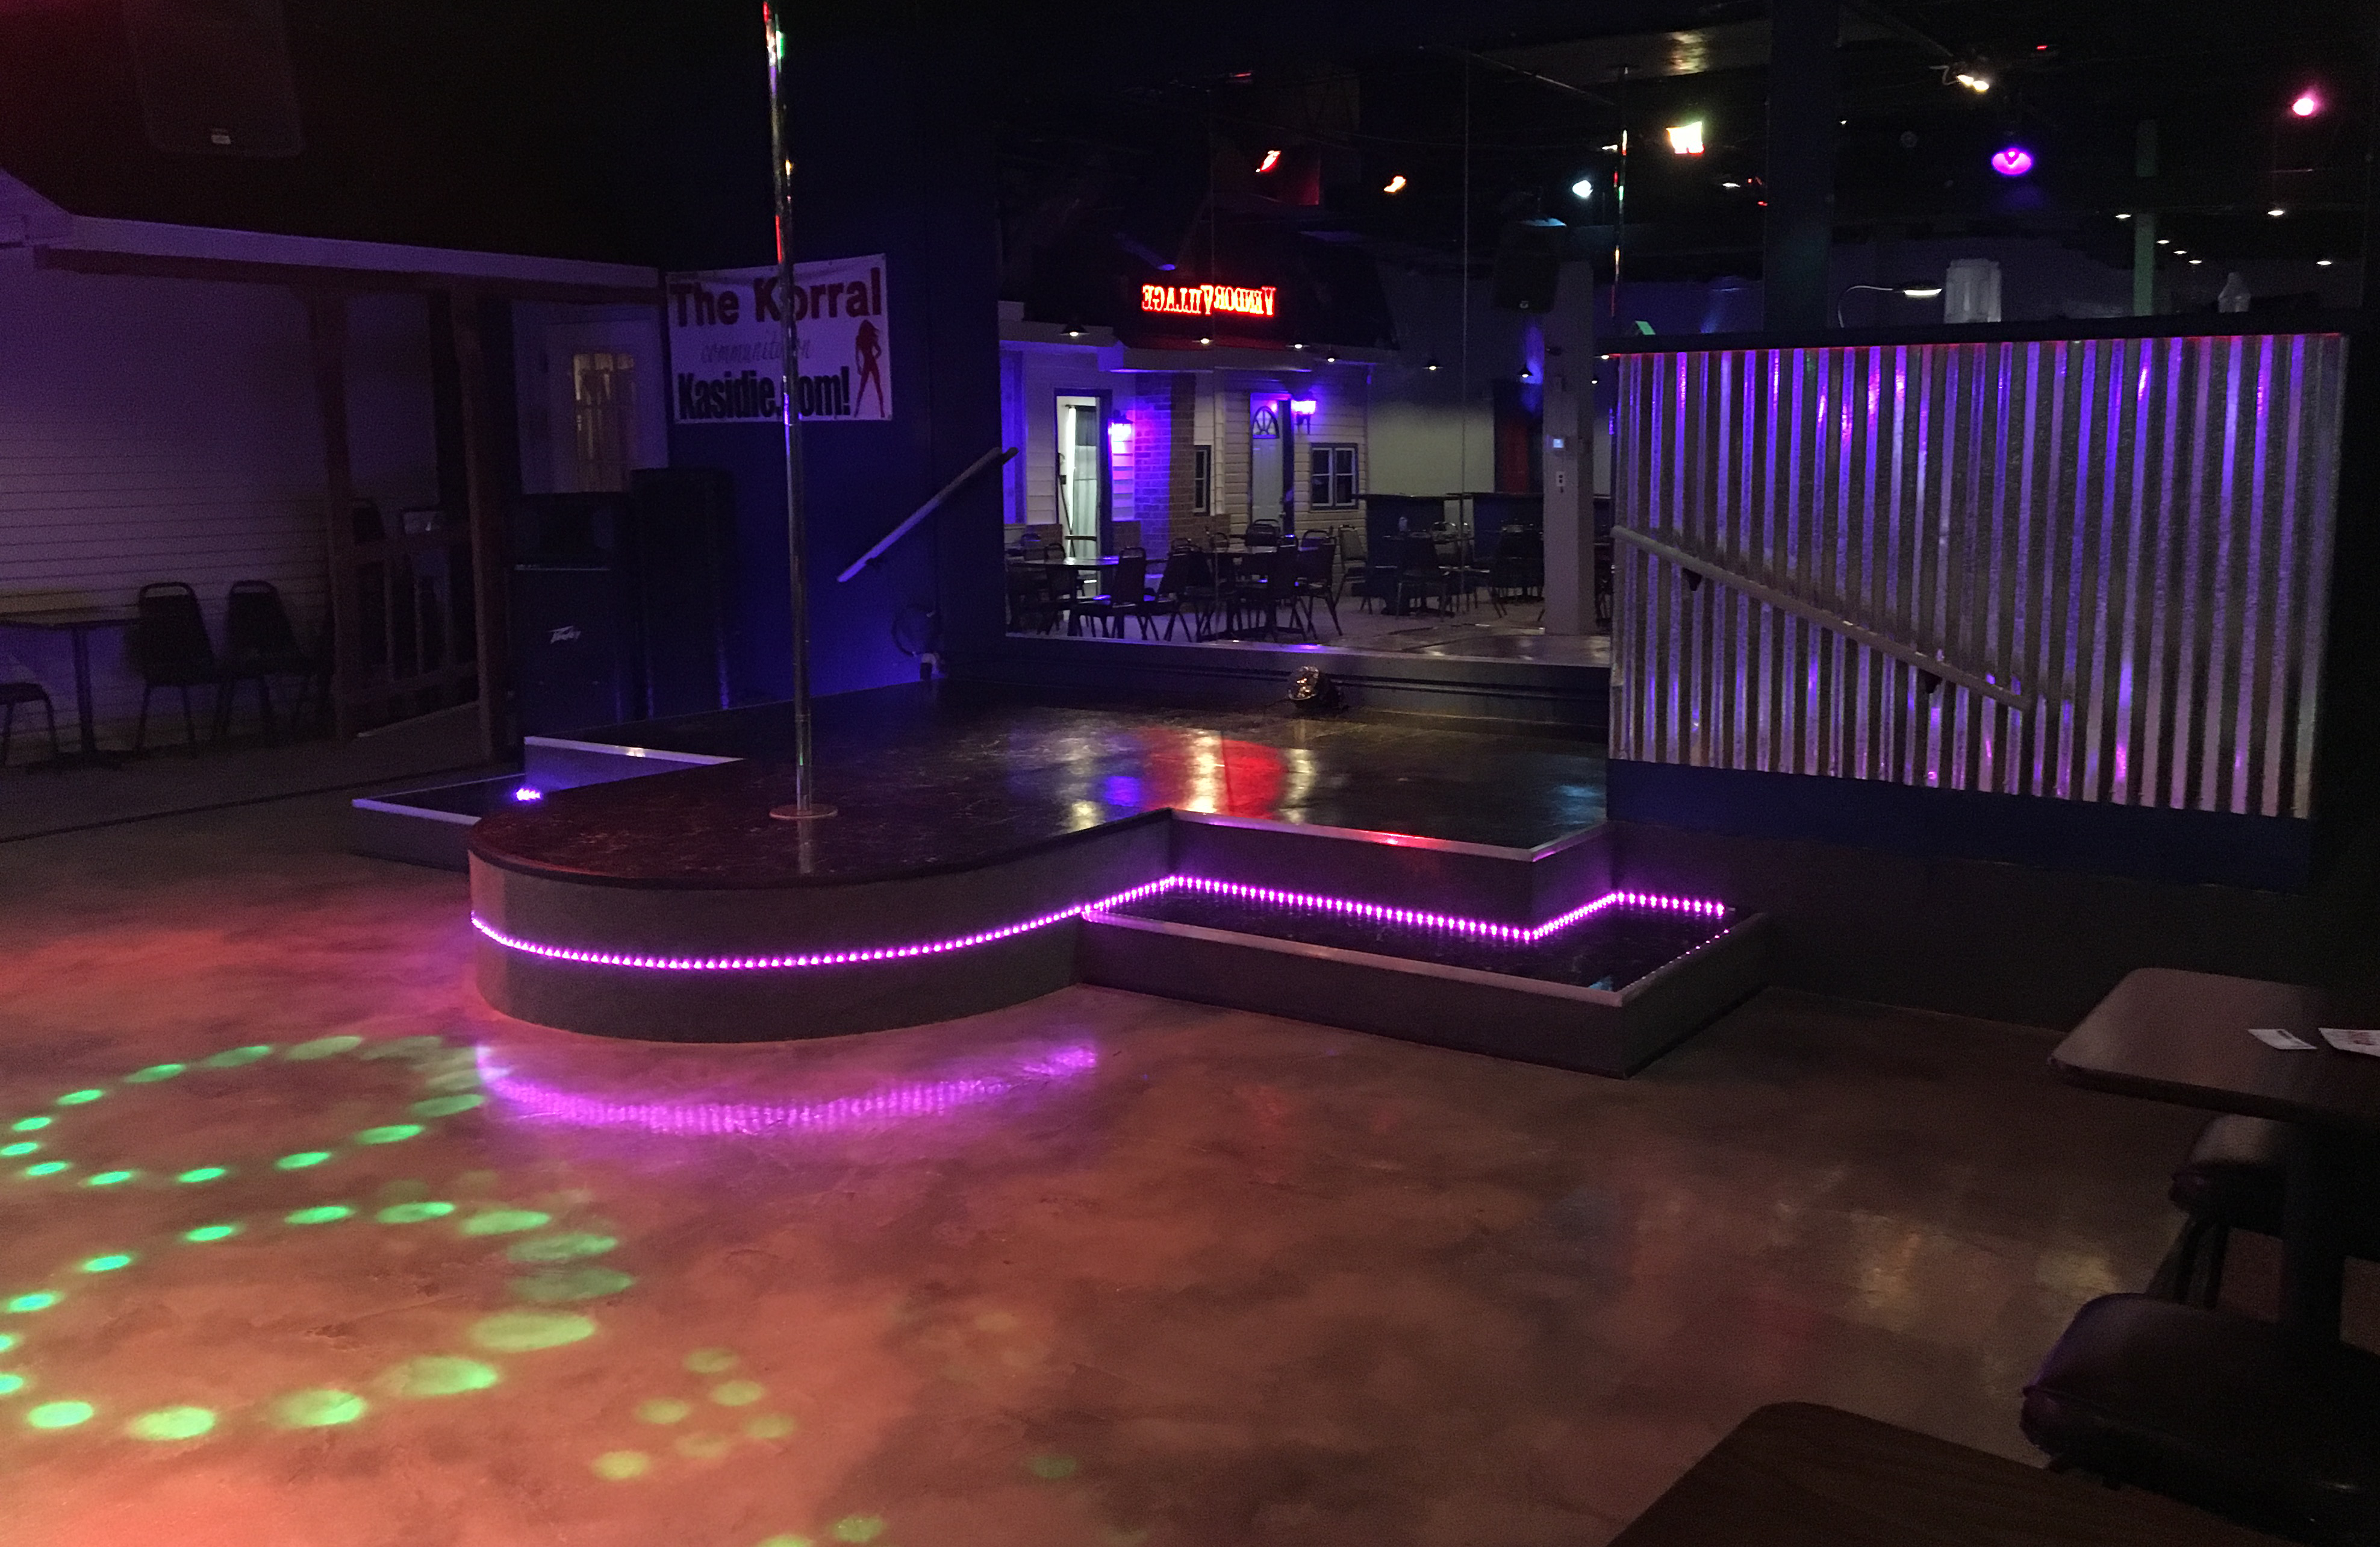 The Korral's dance floor with stage, stripper pole and DJ booth